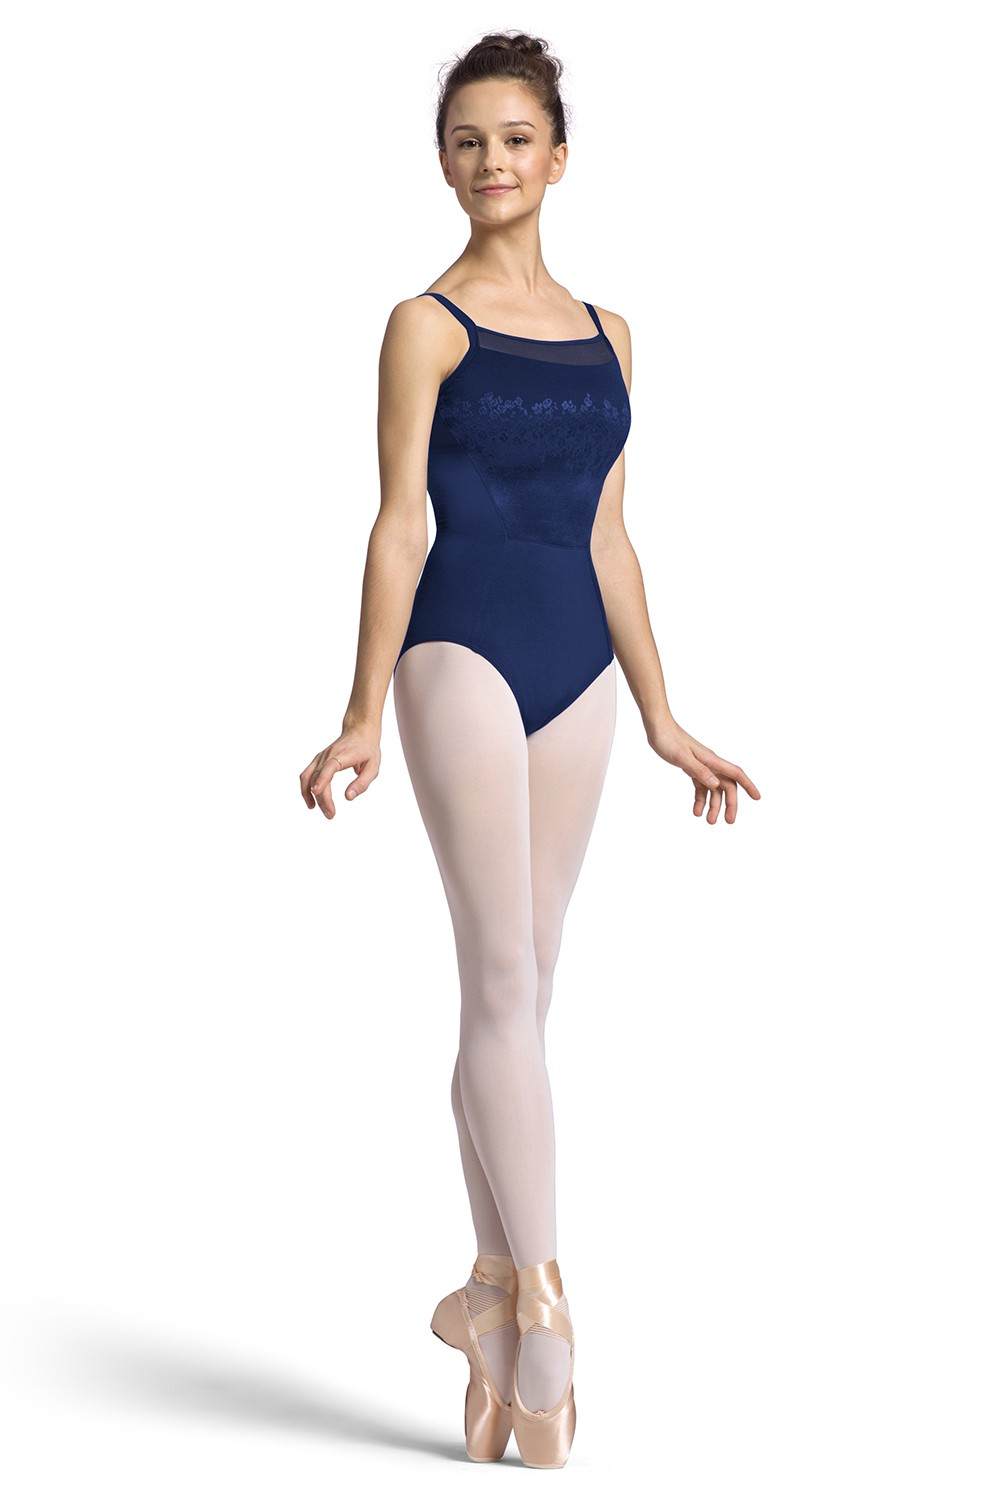 Feline Women's Dance Leotards